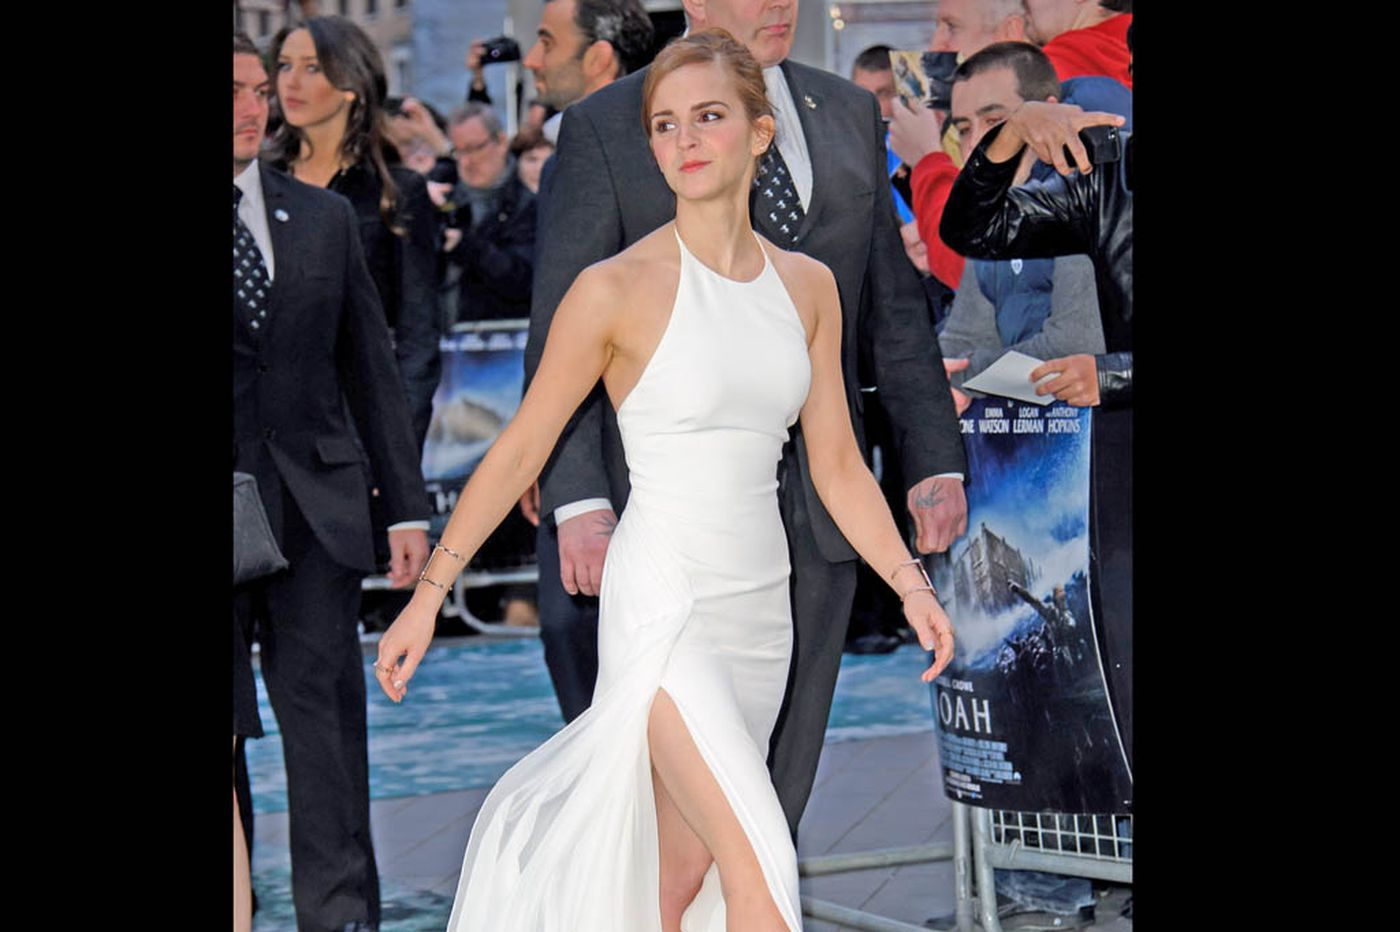 Nude threats against Emma Watson part of meta Internet hoax